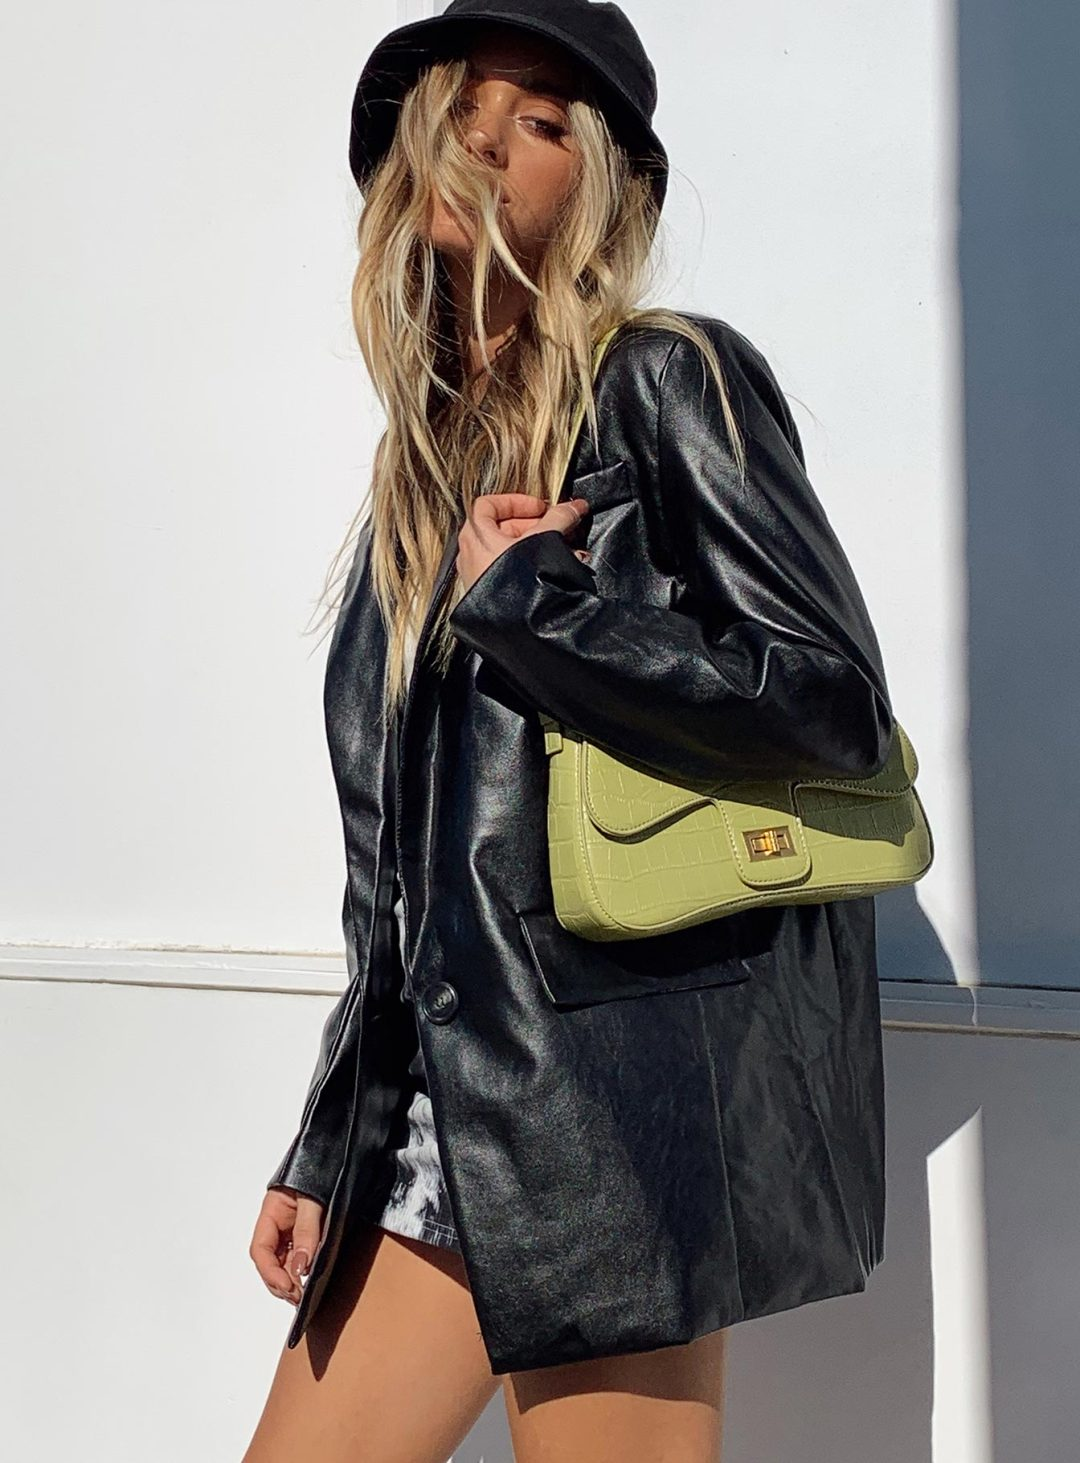 Black leather coat outfit with bucket hat